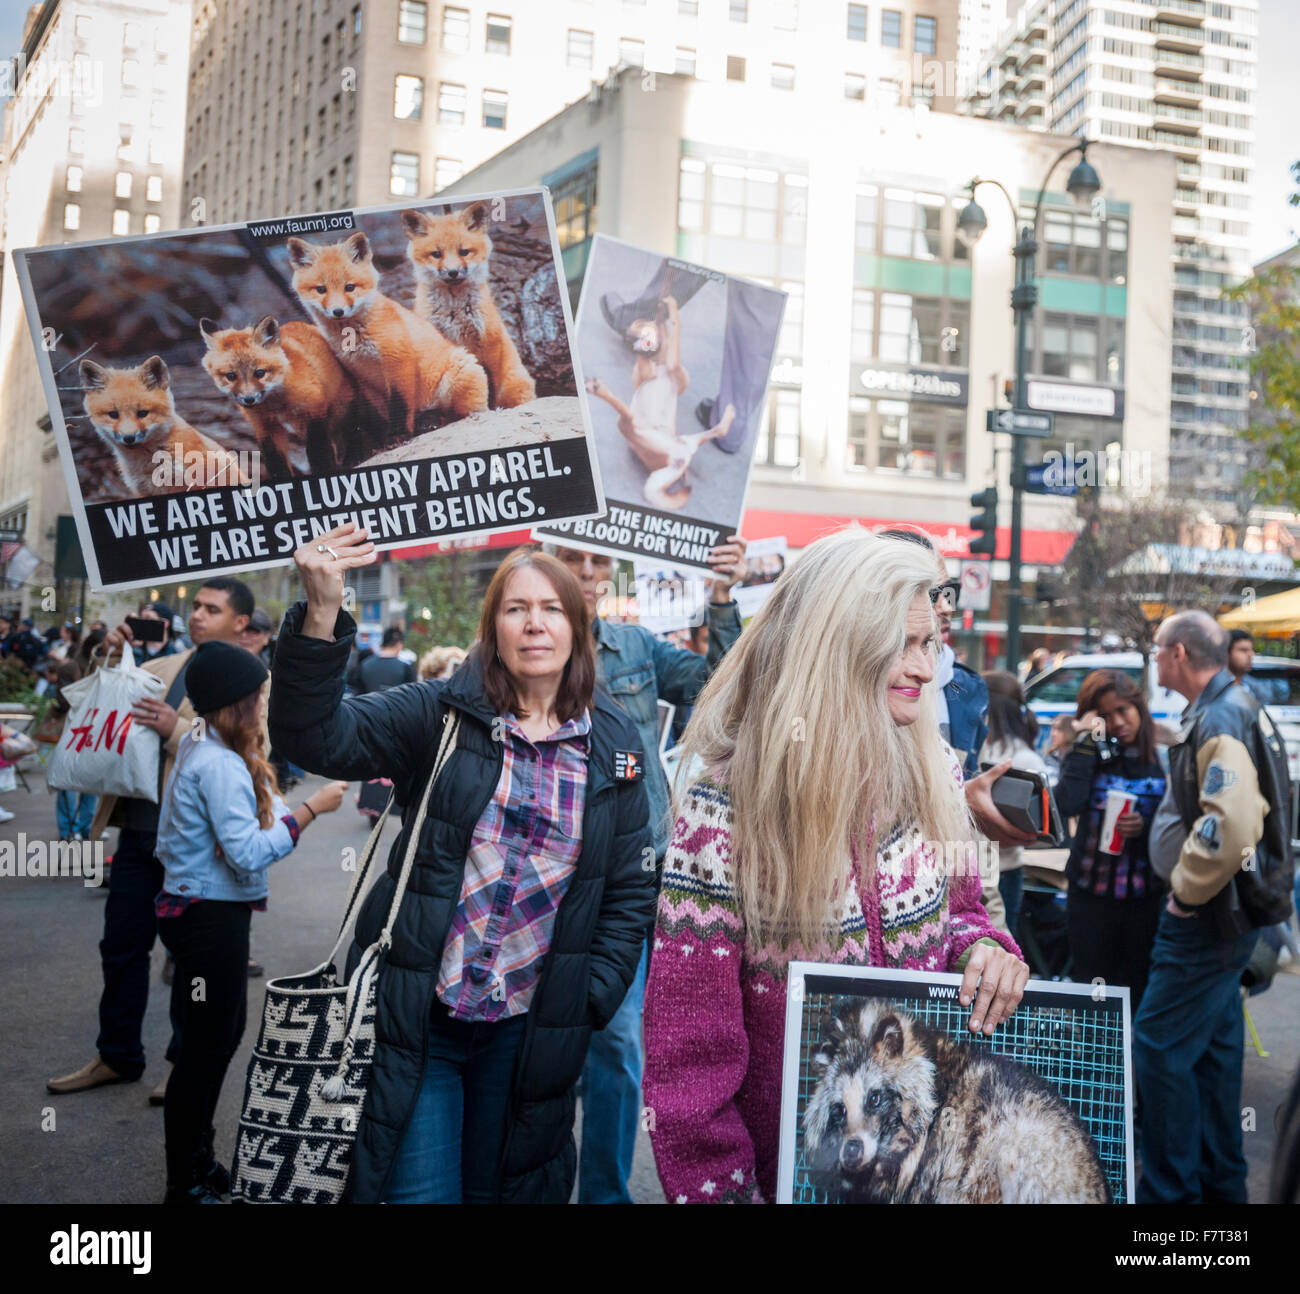 Animal rights activists protest the sale of fur on Black Friday, traditionally known as Fur Free Friday, on Friday, Stock Photo